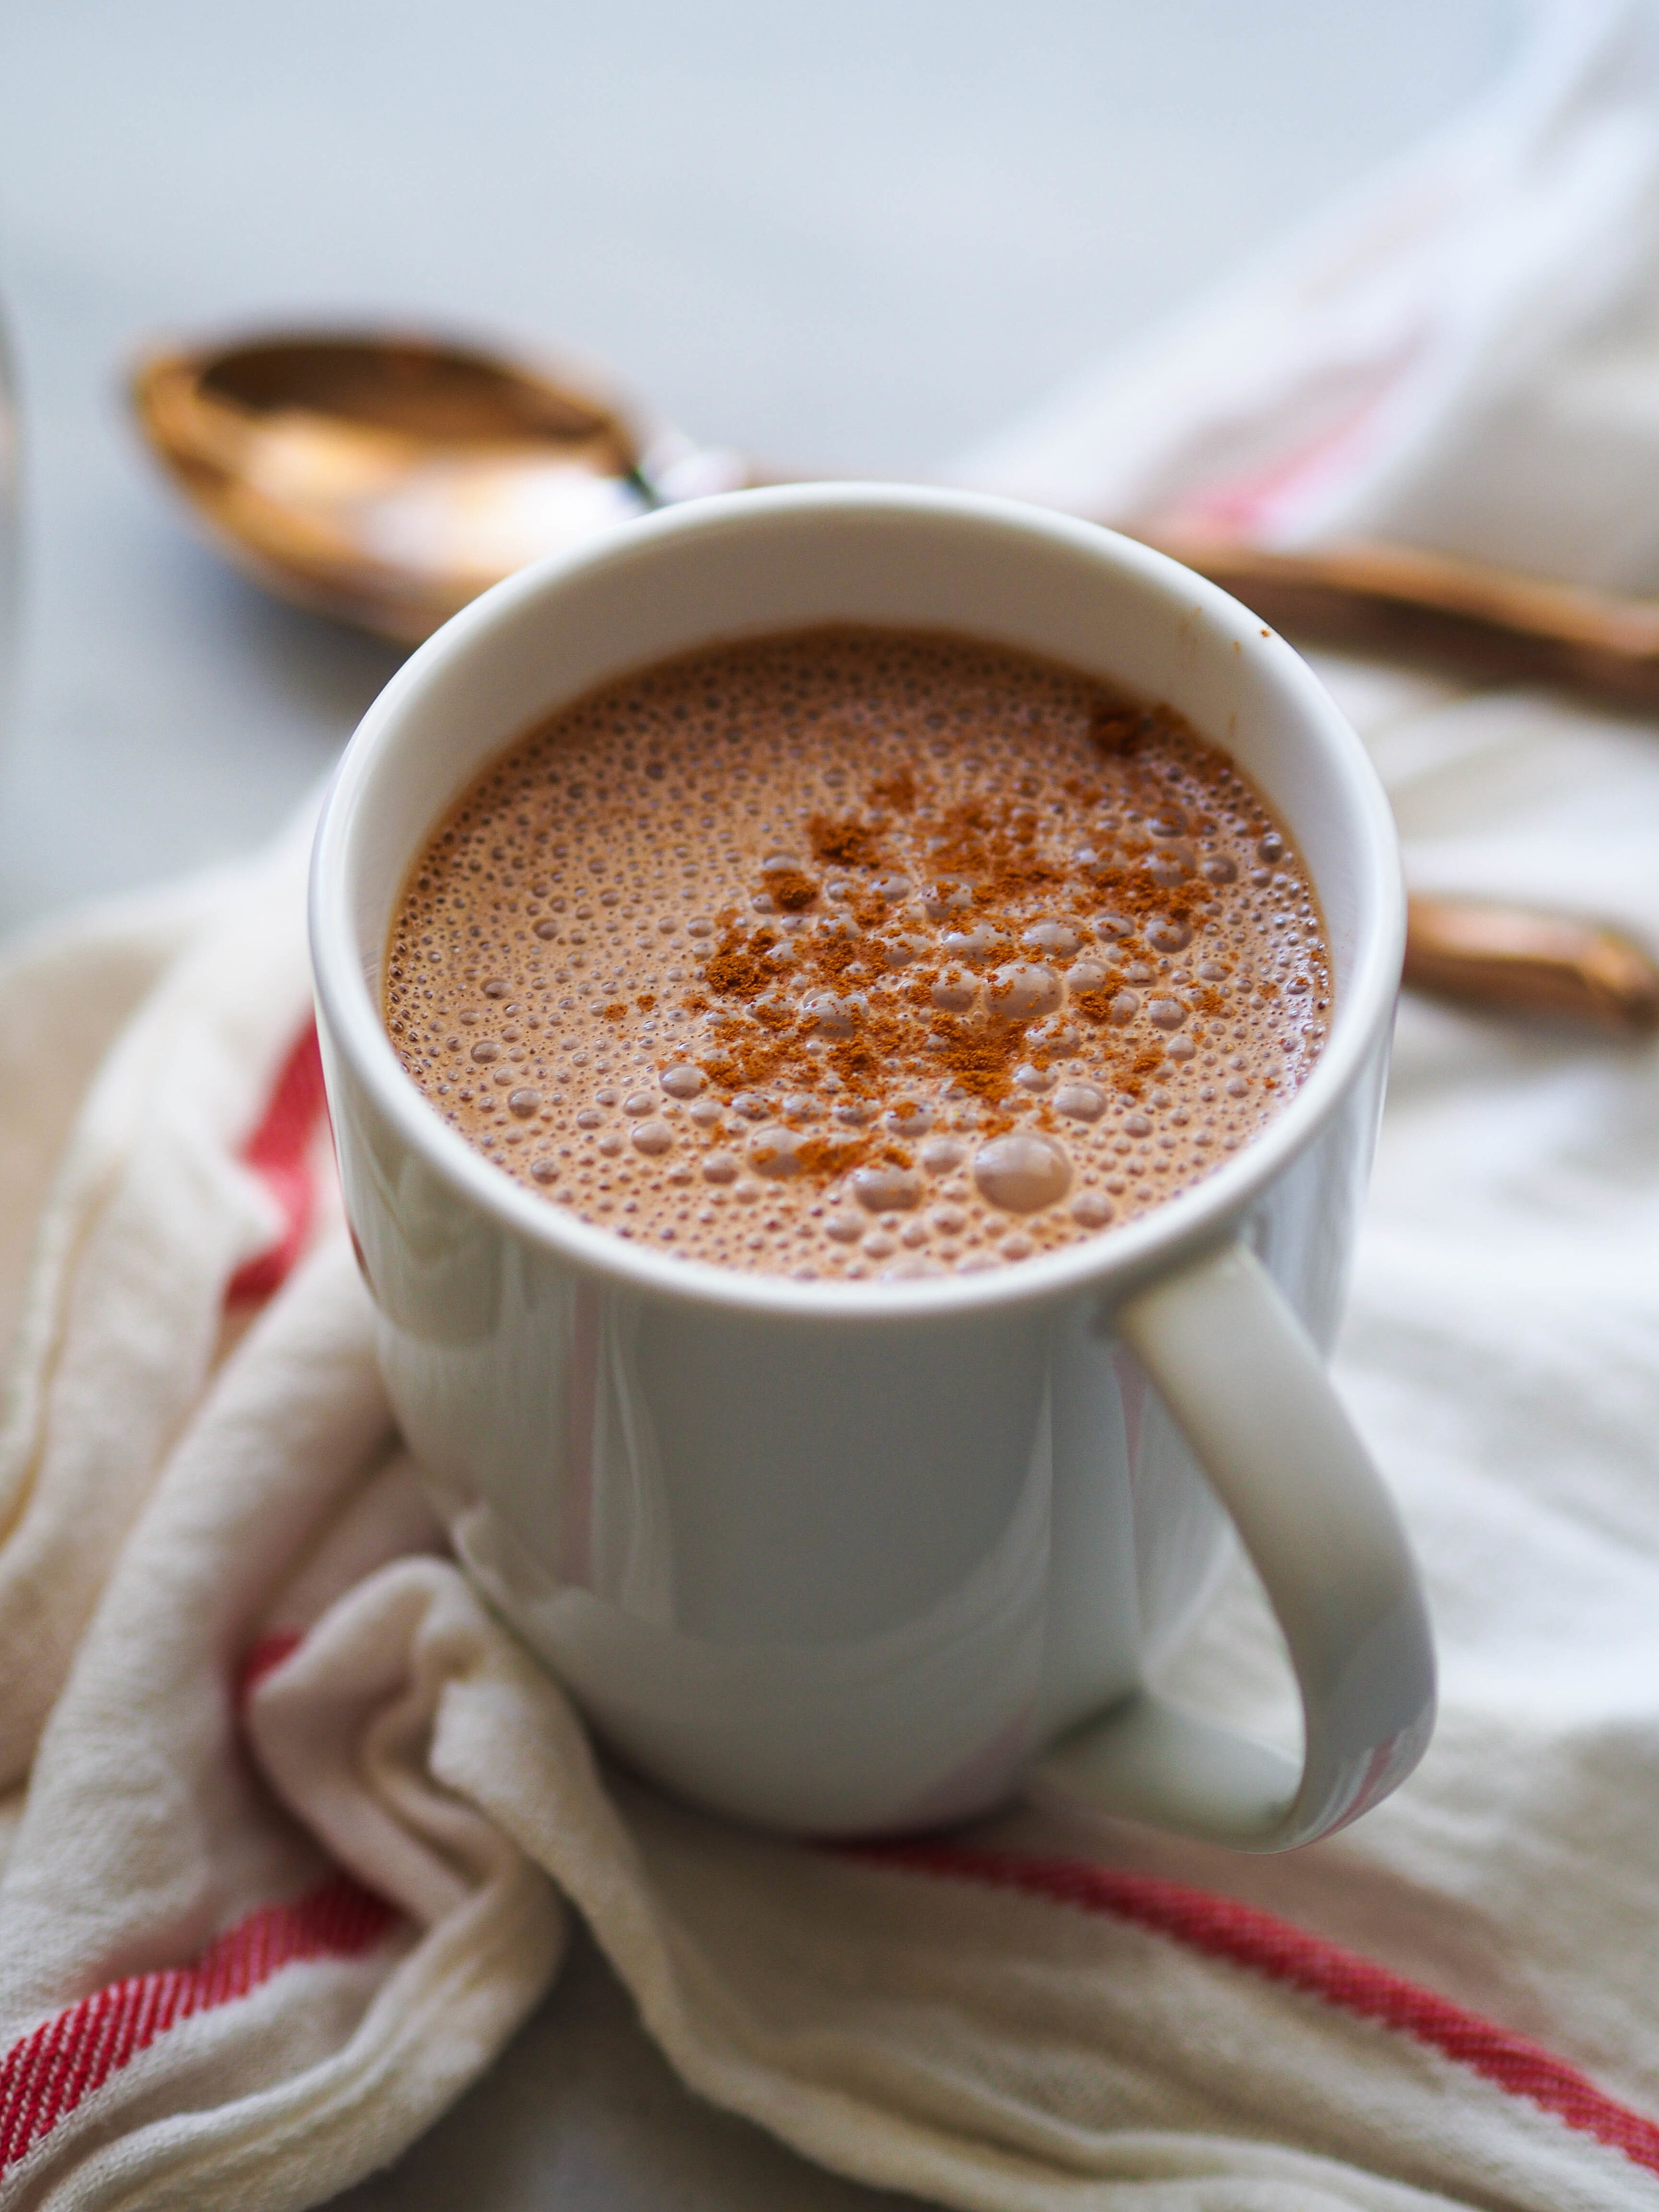 Make this frothy Mexican Hot Chocolate to warm up in the winter! #hotchocolate #chocolate #beverage #winter #vegan